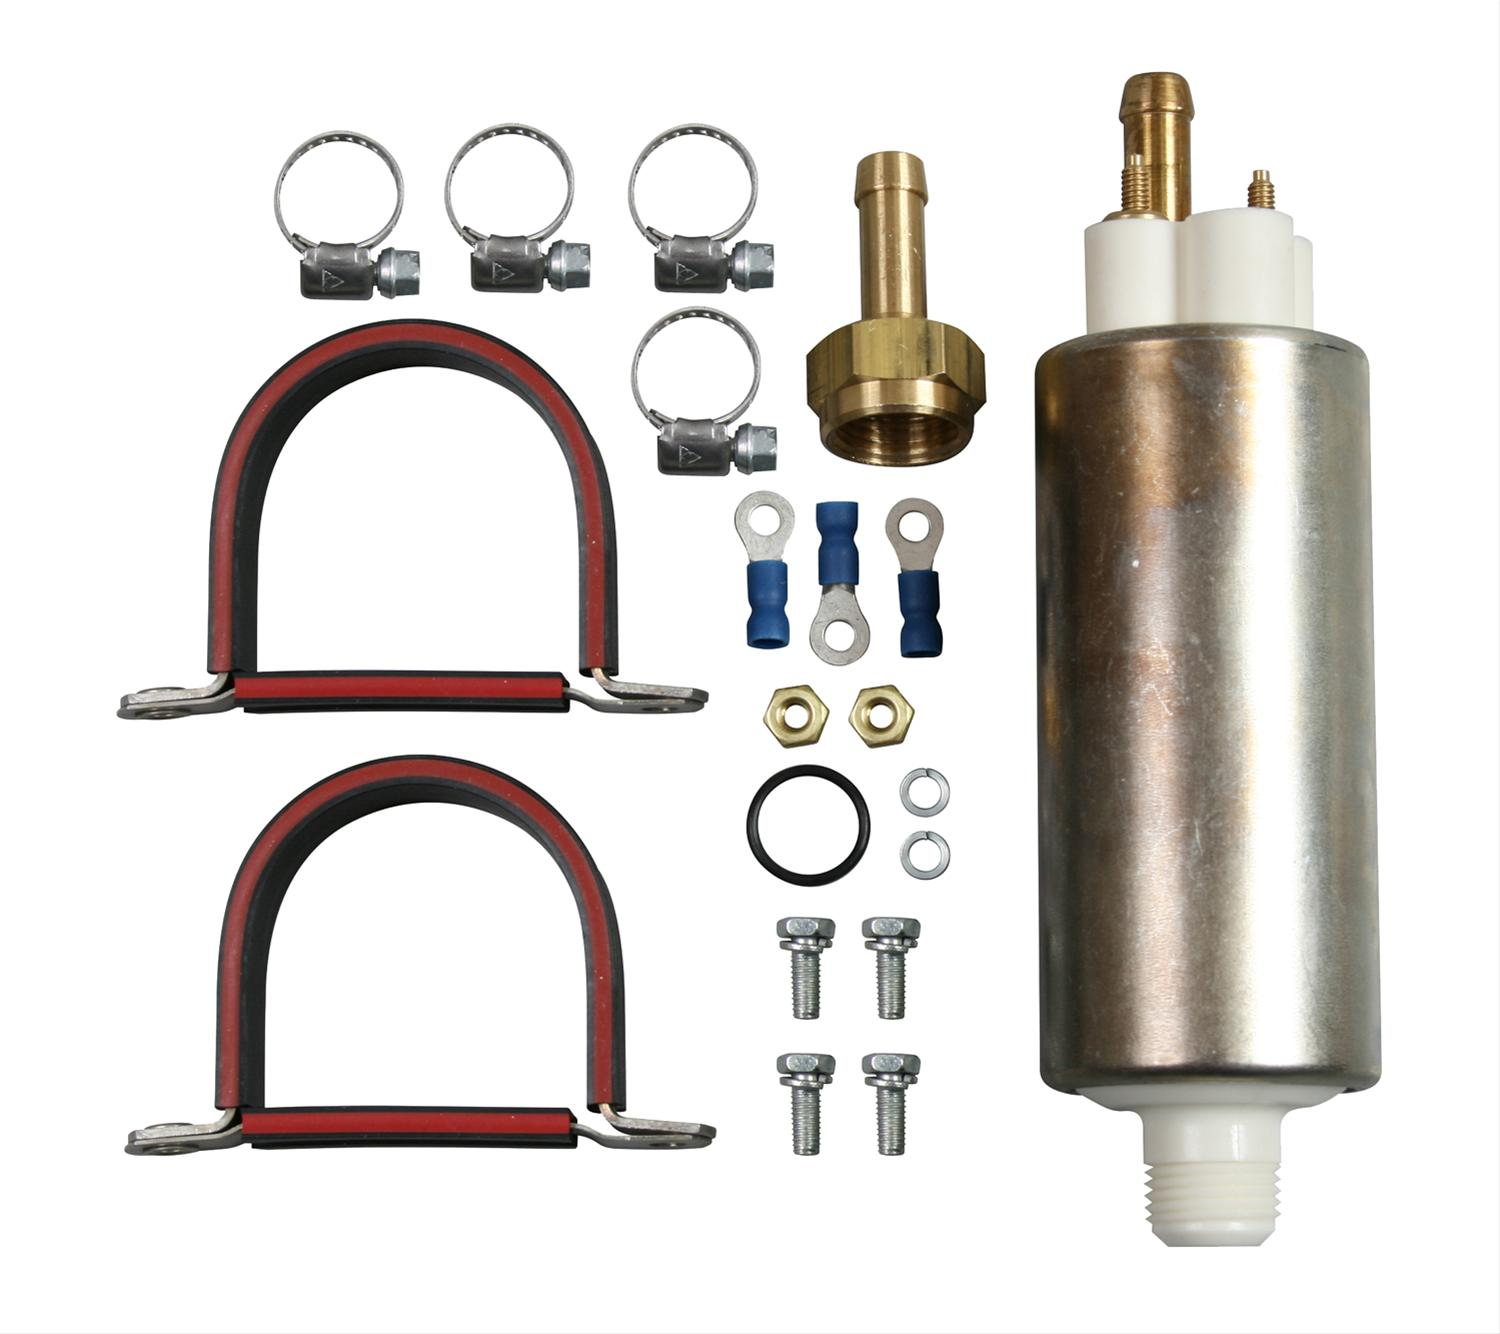 hight resolution of airtex external electric fuel pumps e8248 free shipping on orders over 99 at summit racing